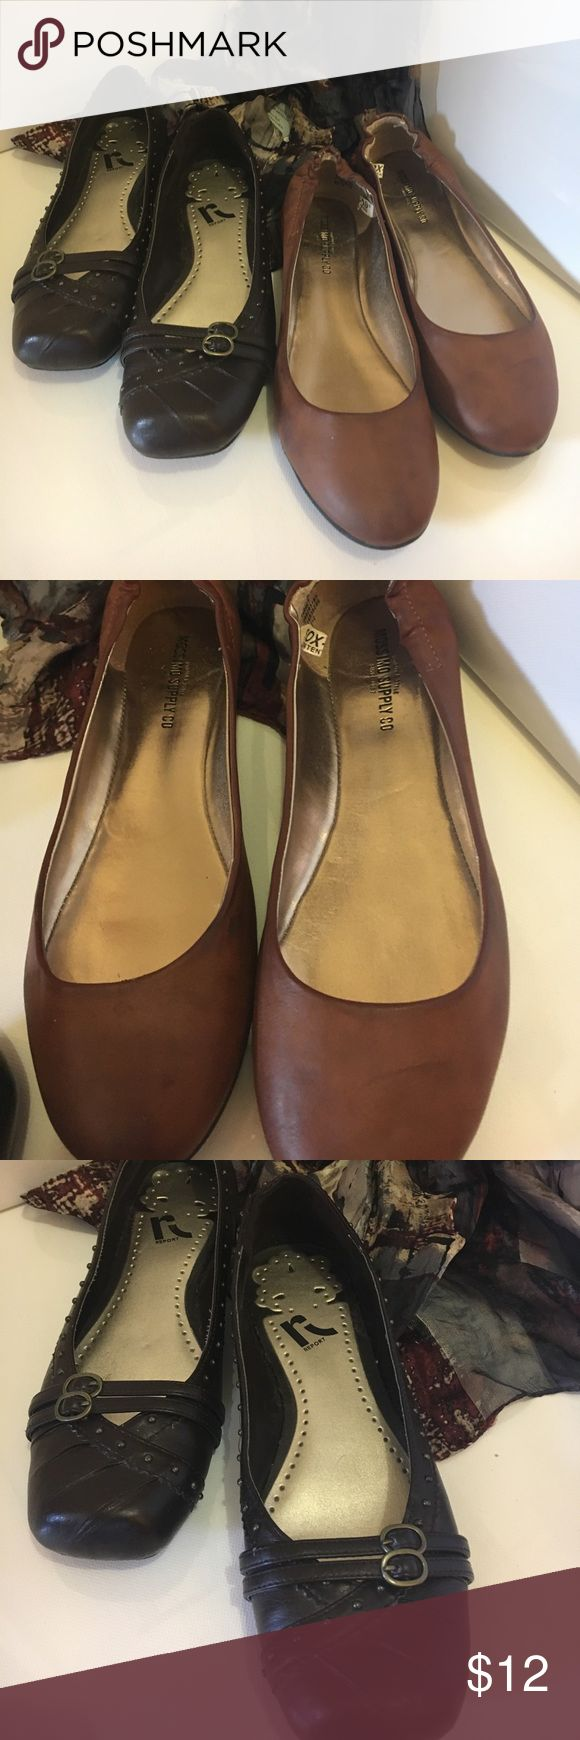 Bundled Brown Shoes! Report Dark Brown (7) with studs & buckles and simple Mossimo Supply Co. saddle brown classic flats (7 1/2). Both fit the same. Both all manmade materials. Both in very good used shape. Shoes Flats & Loafers